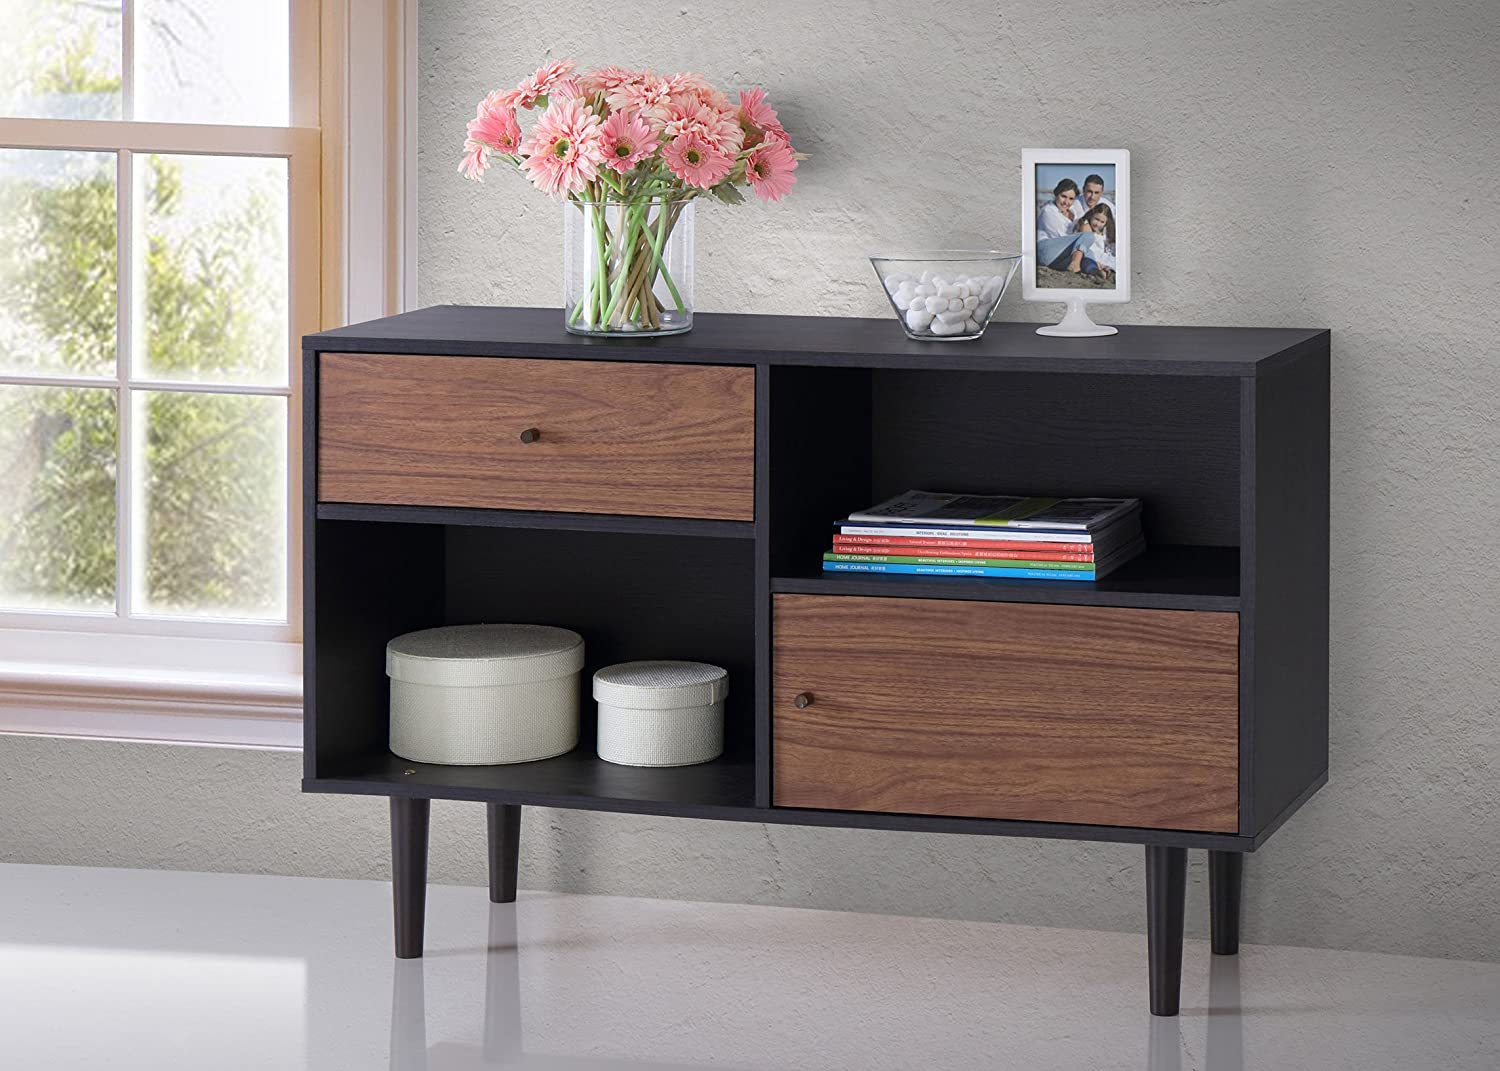 Furniture Modern Storage